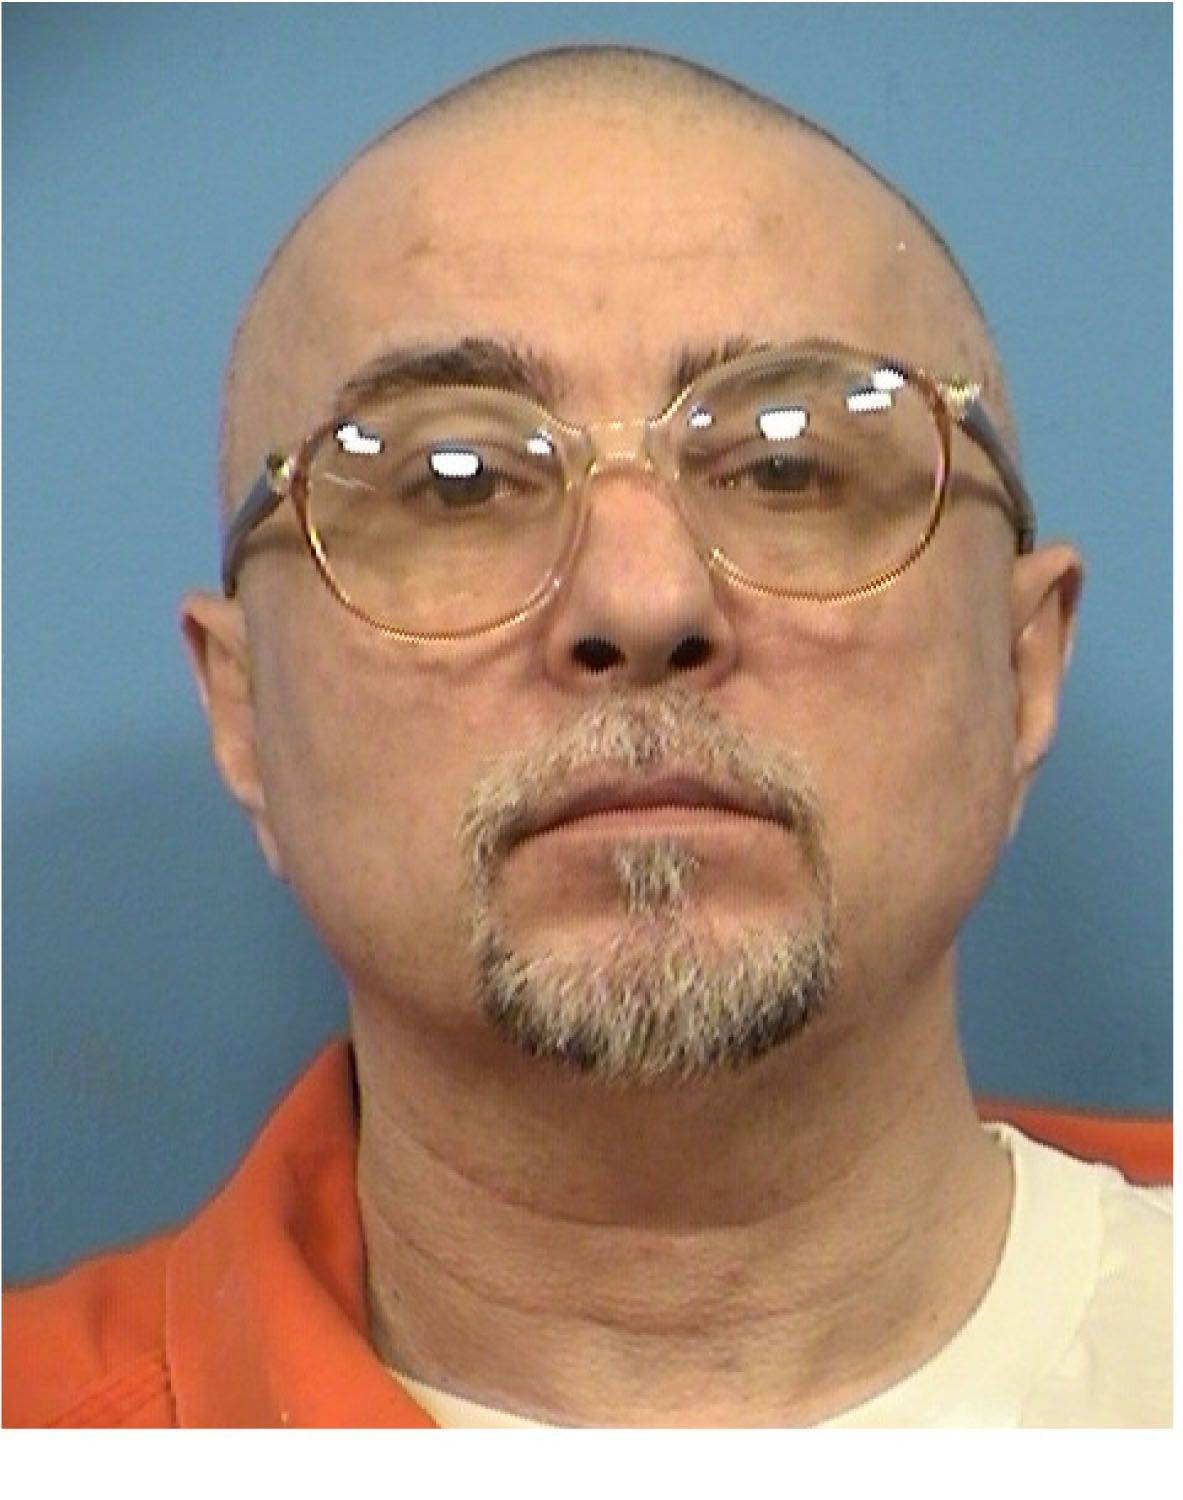 Brian Dugan, DuPage County, for the murder of 10-year-old Jeanine Nicarico of Naperville in 1983.